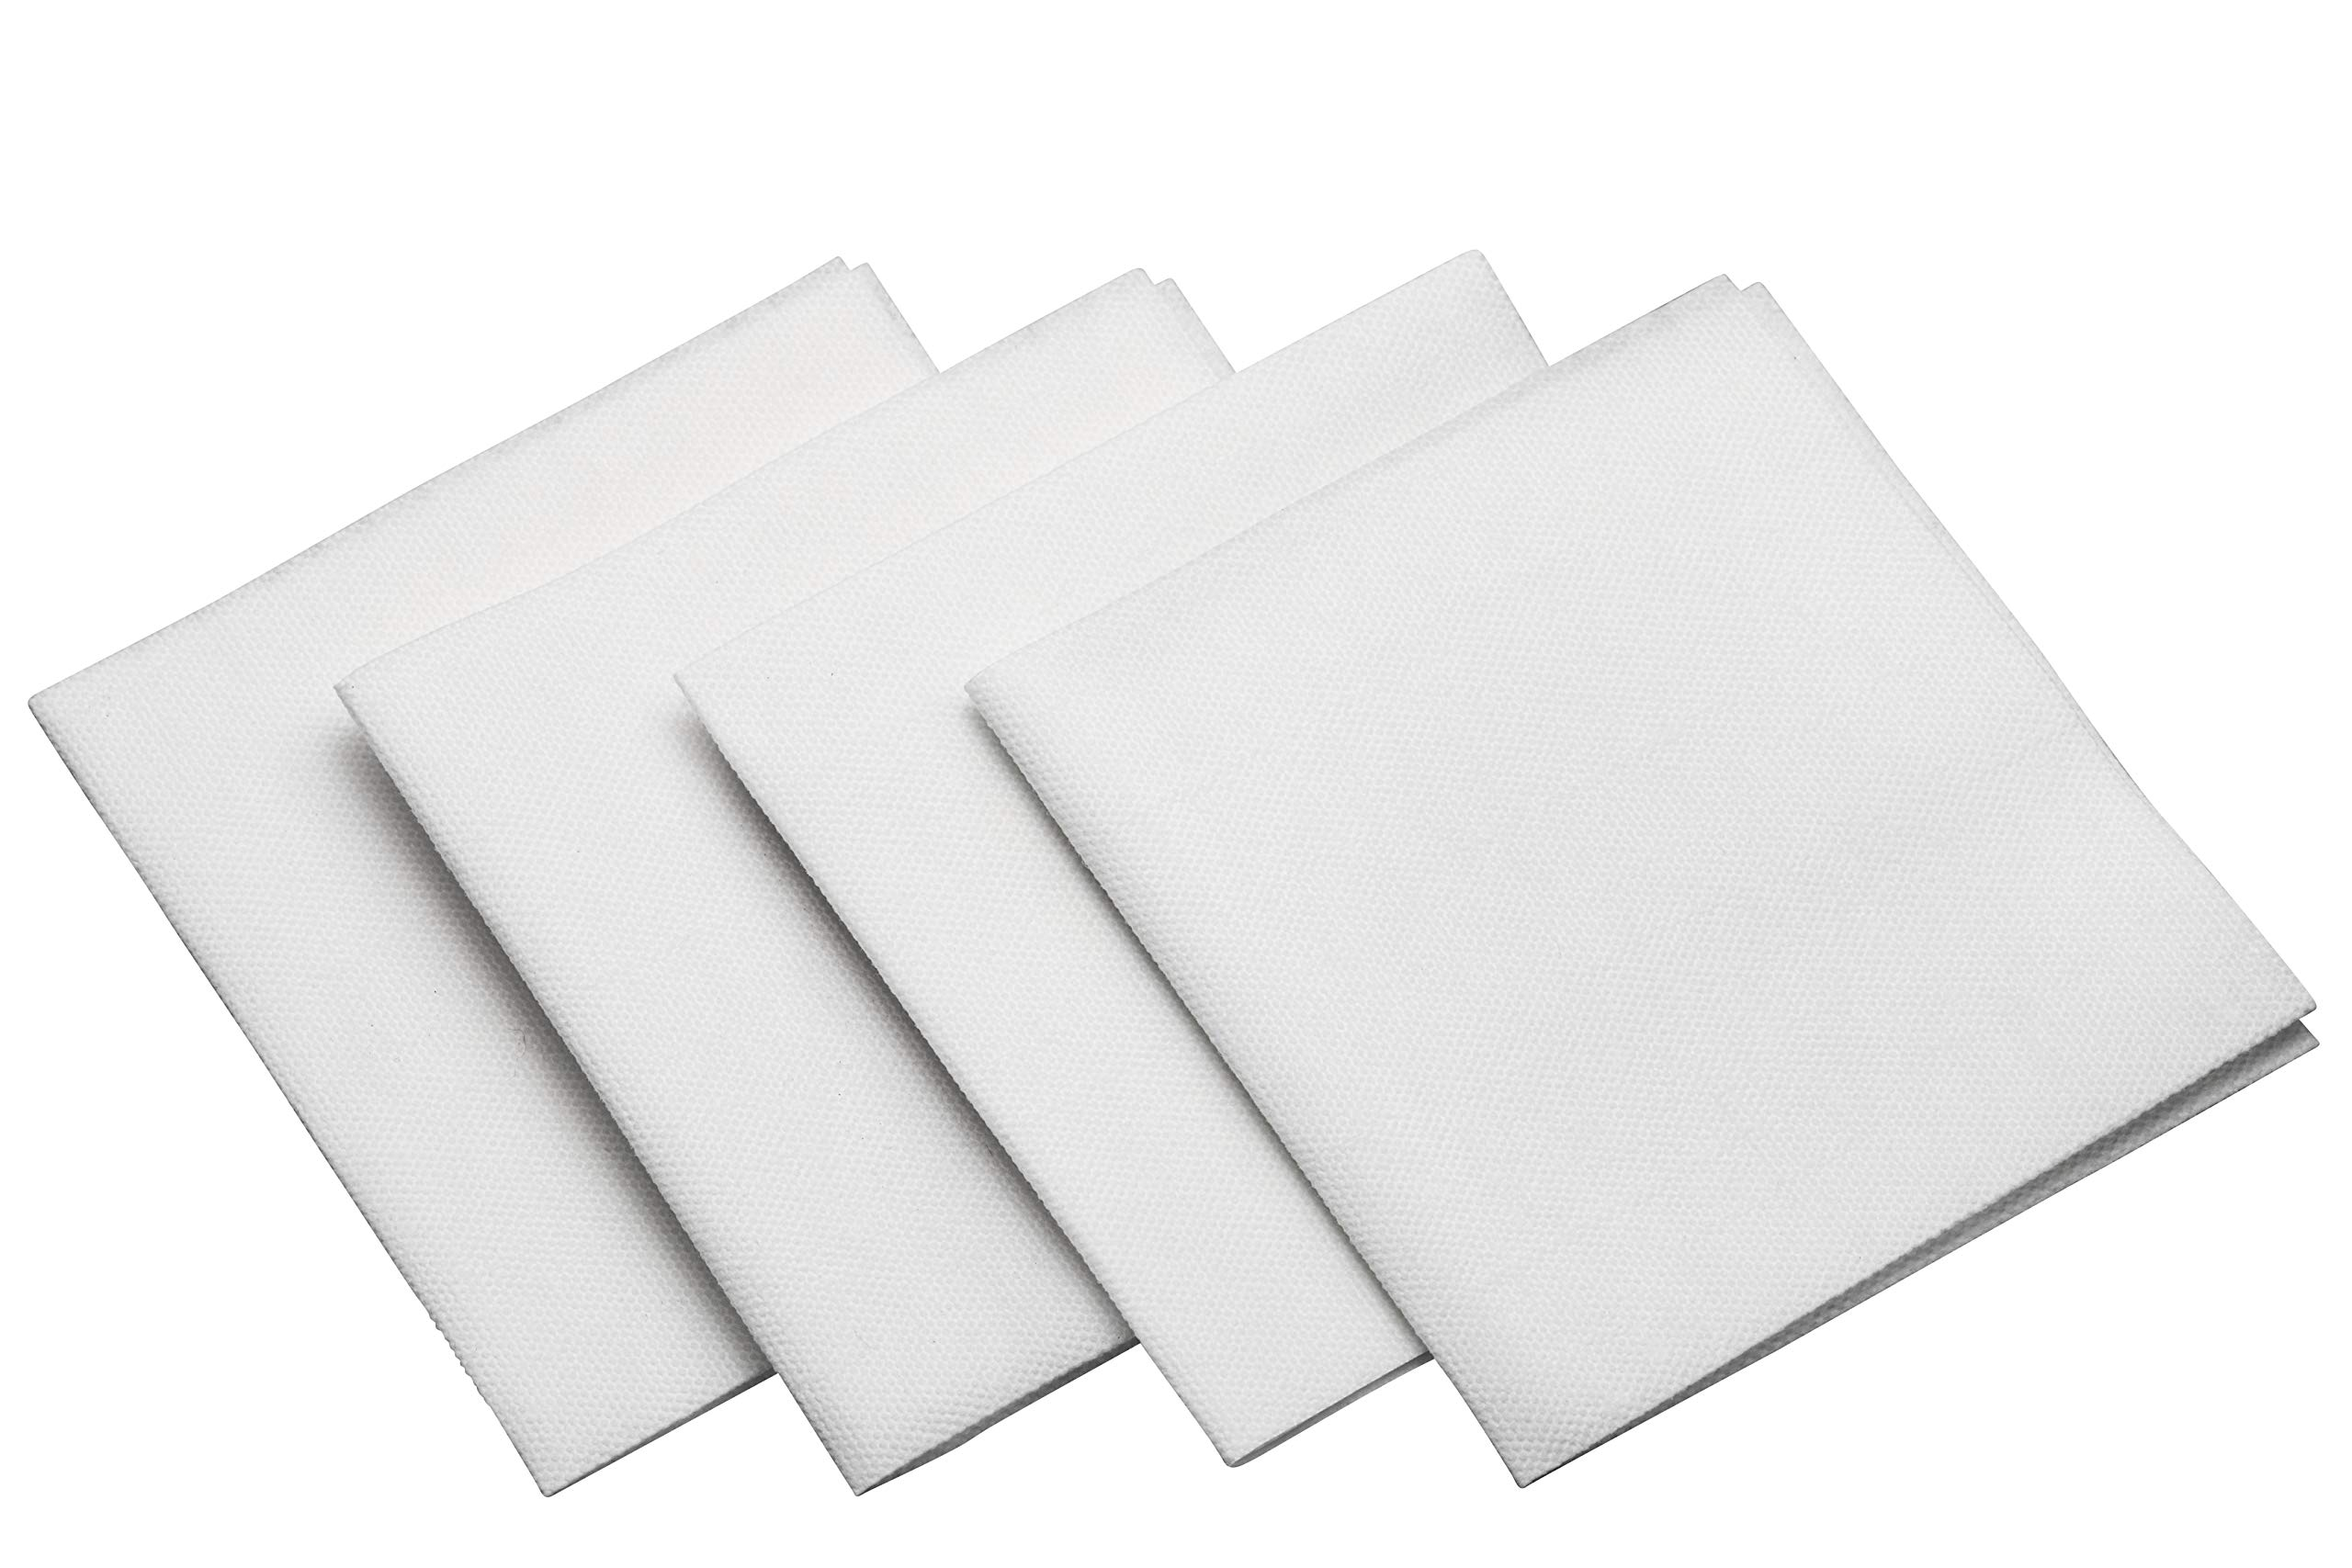 DIPLASTIBLE Luxury Linen-Like Cocktail Beverage Napkins 10-Pack (1,800 Total) | Natural White Disposable Napkins 4x4 Inch | Absorbent & Soft | Top Quality Wedding Dinner Party Supplies by Diplastible